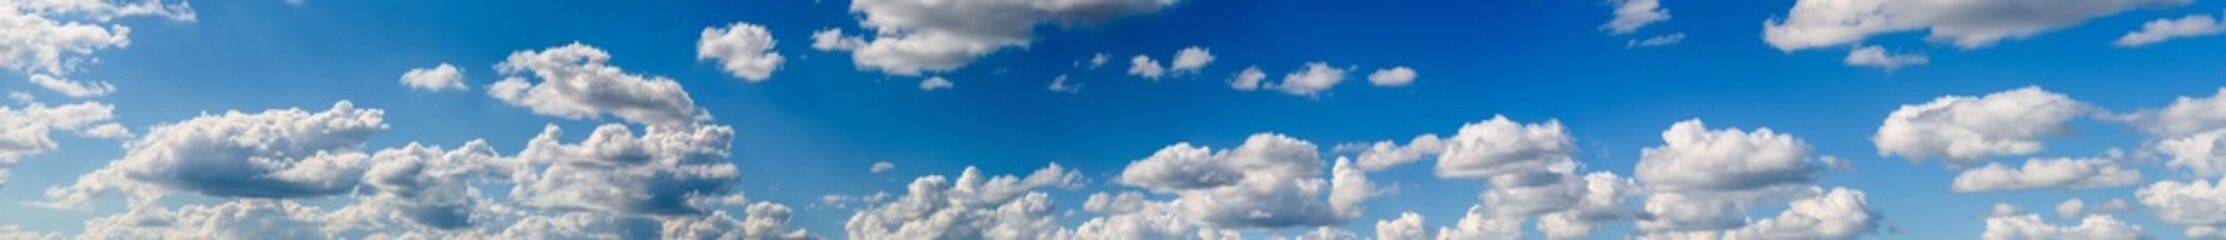 Canvas Prints Heaven Panorama Landscape Of White Cumulus Clouds On Blue Sky